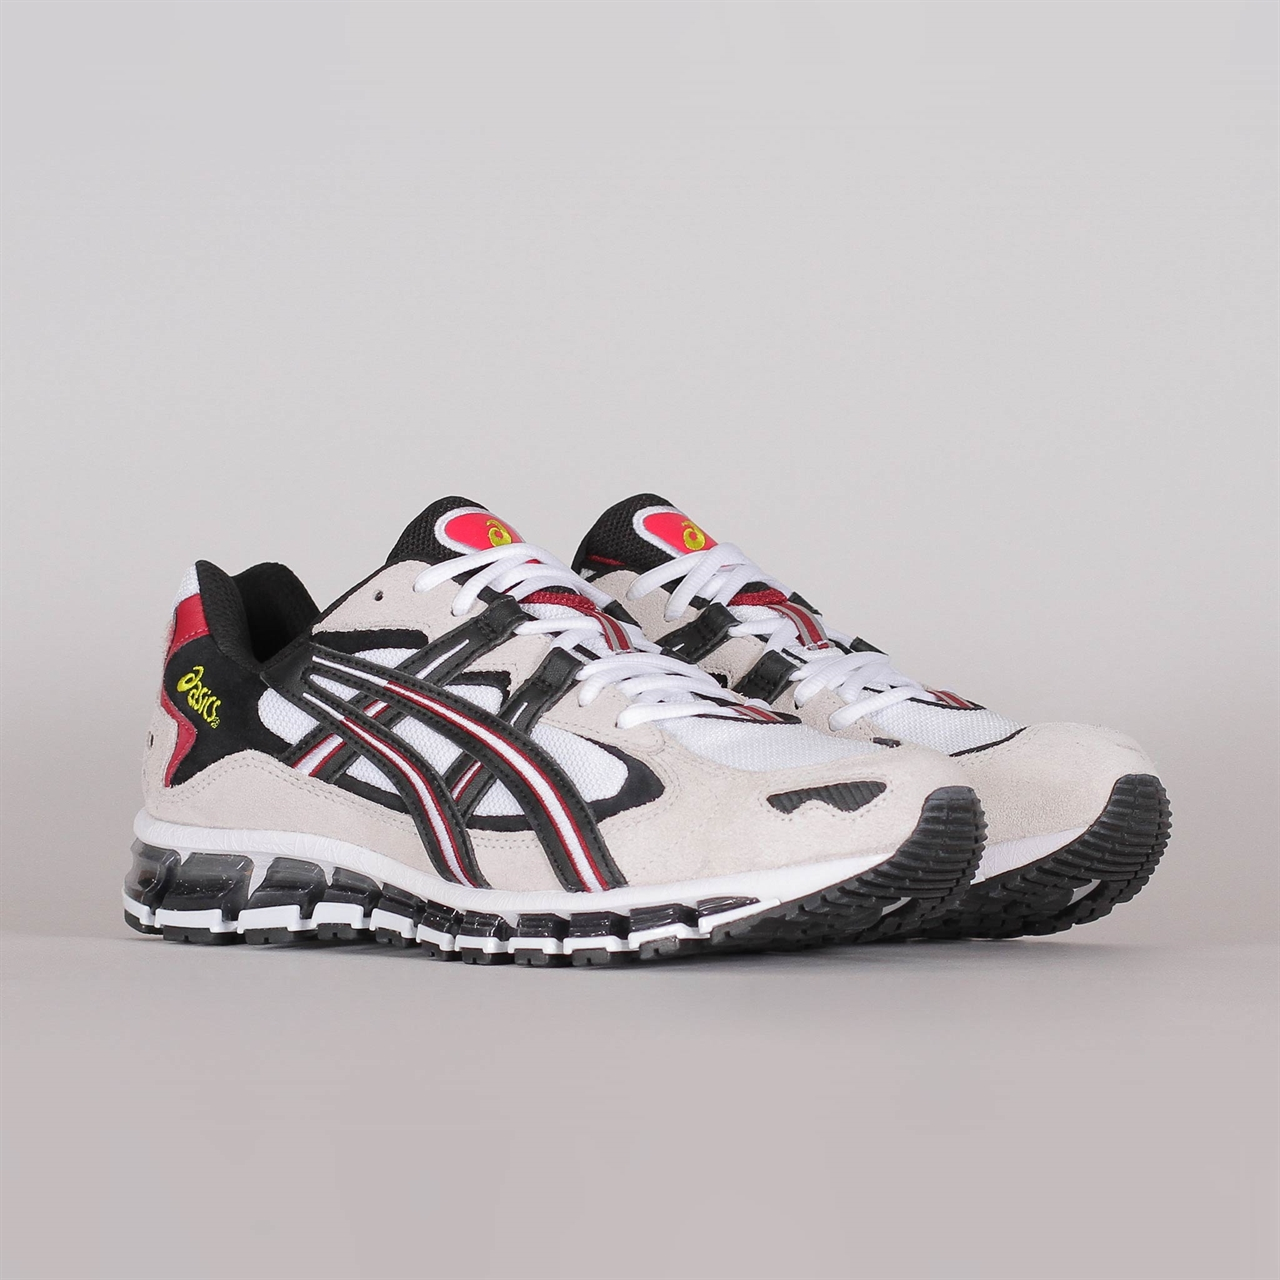 Shelta - Asics Gel-Kayano 5 360 (1012A160)